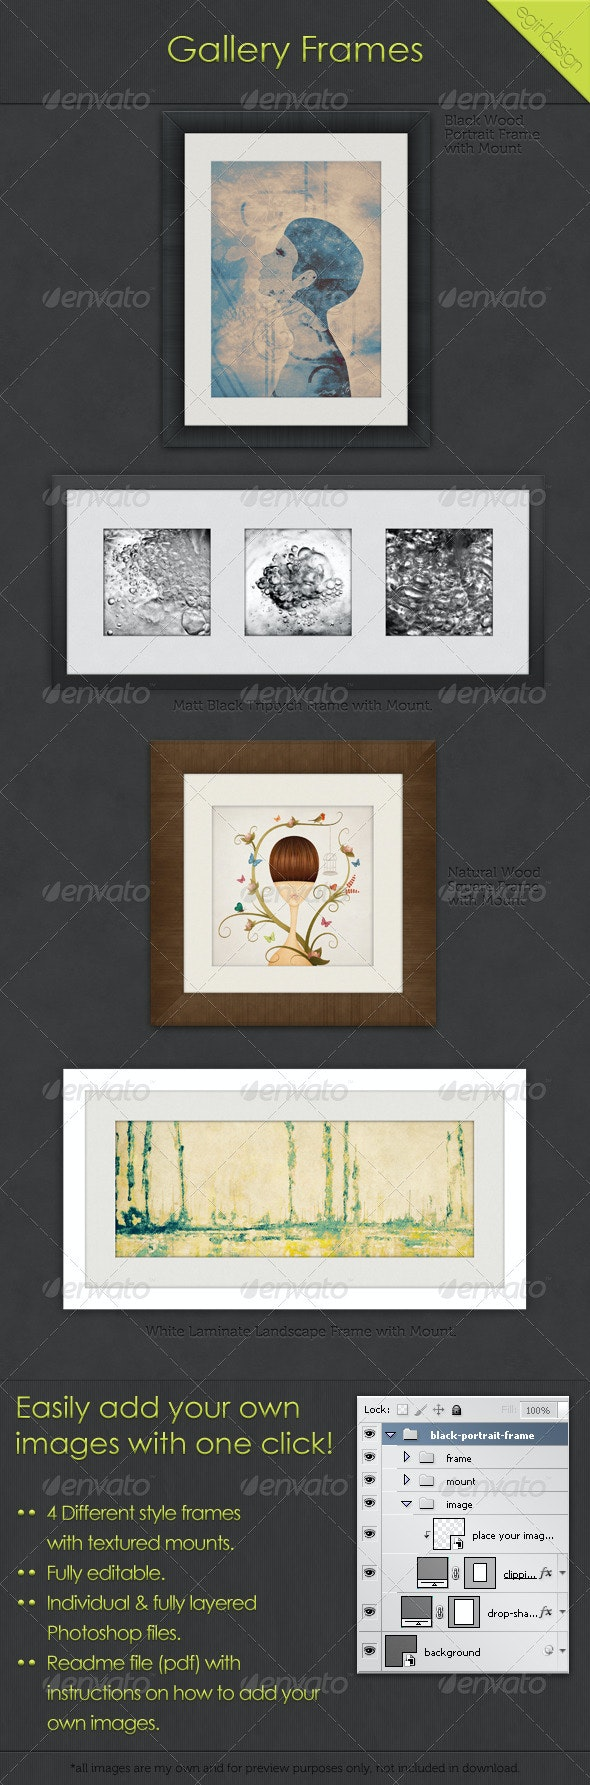 Gallery Frames - Photo Templates Graphics